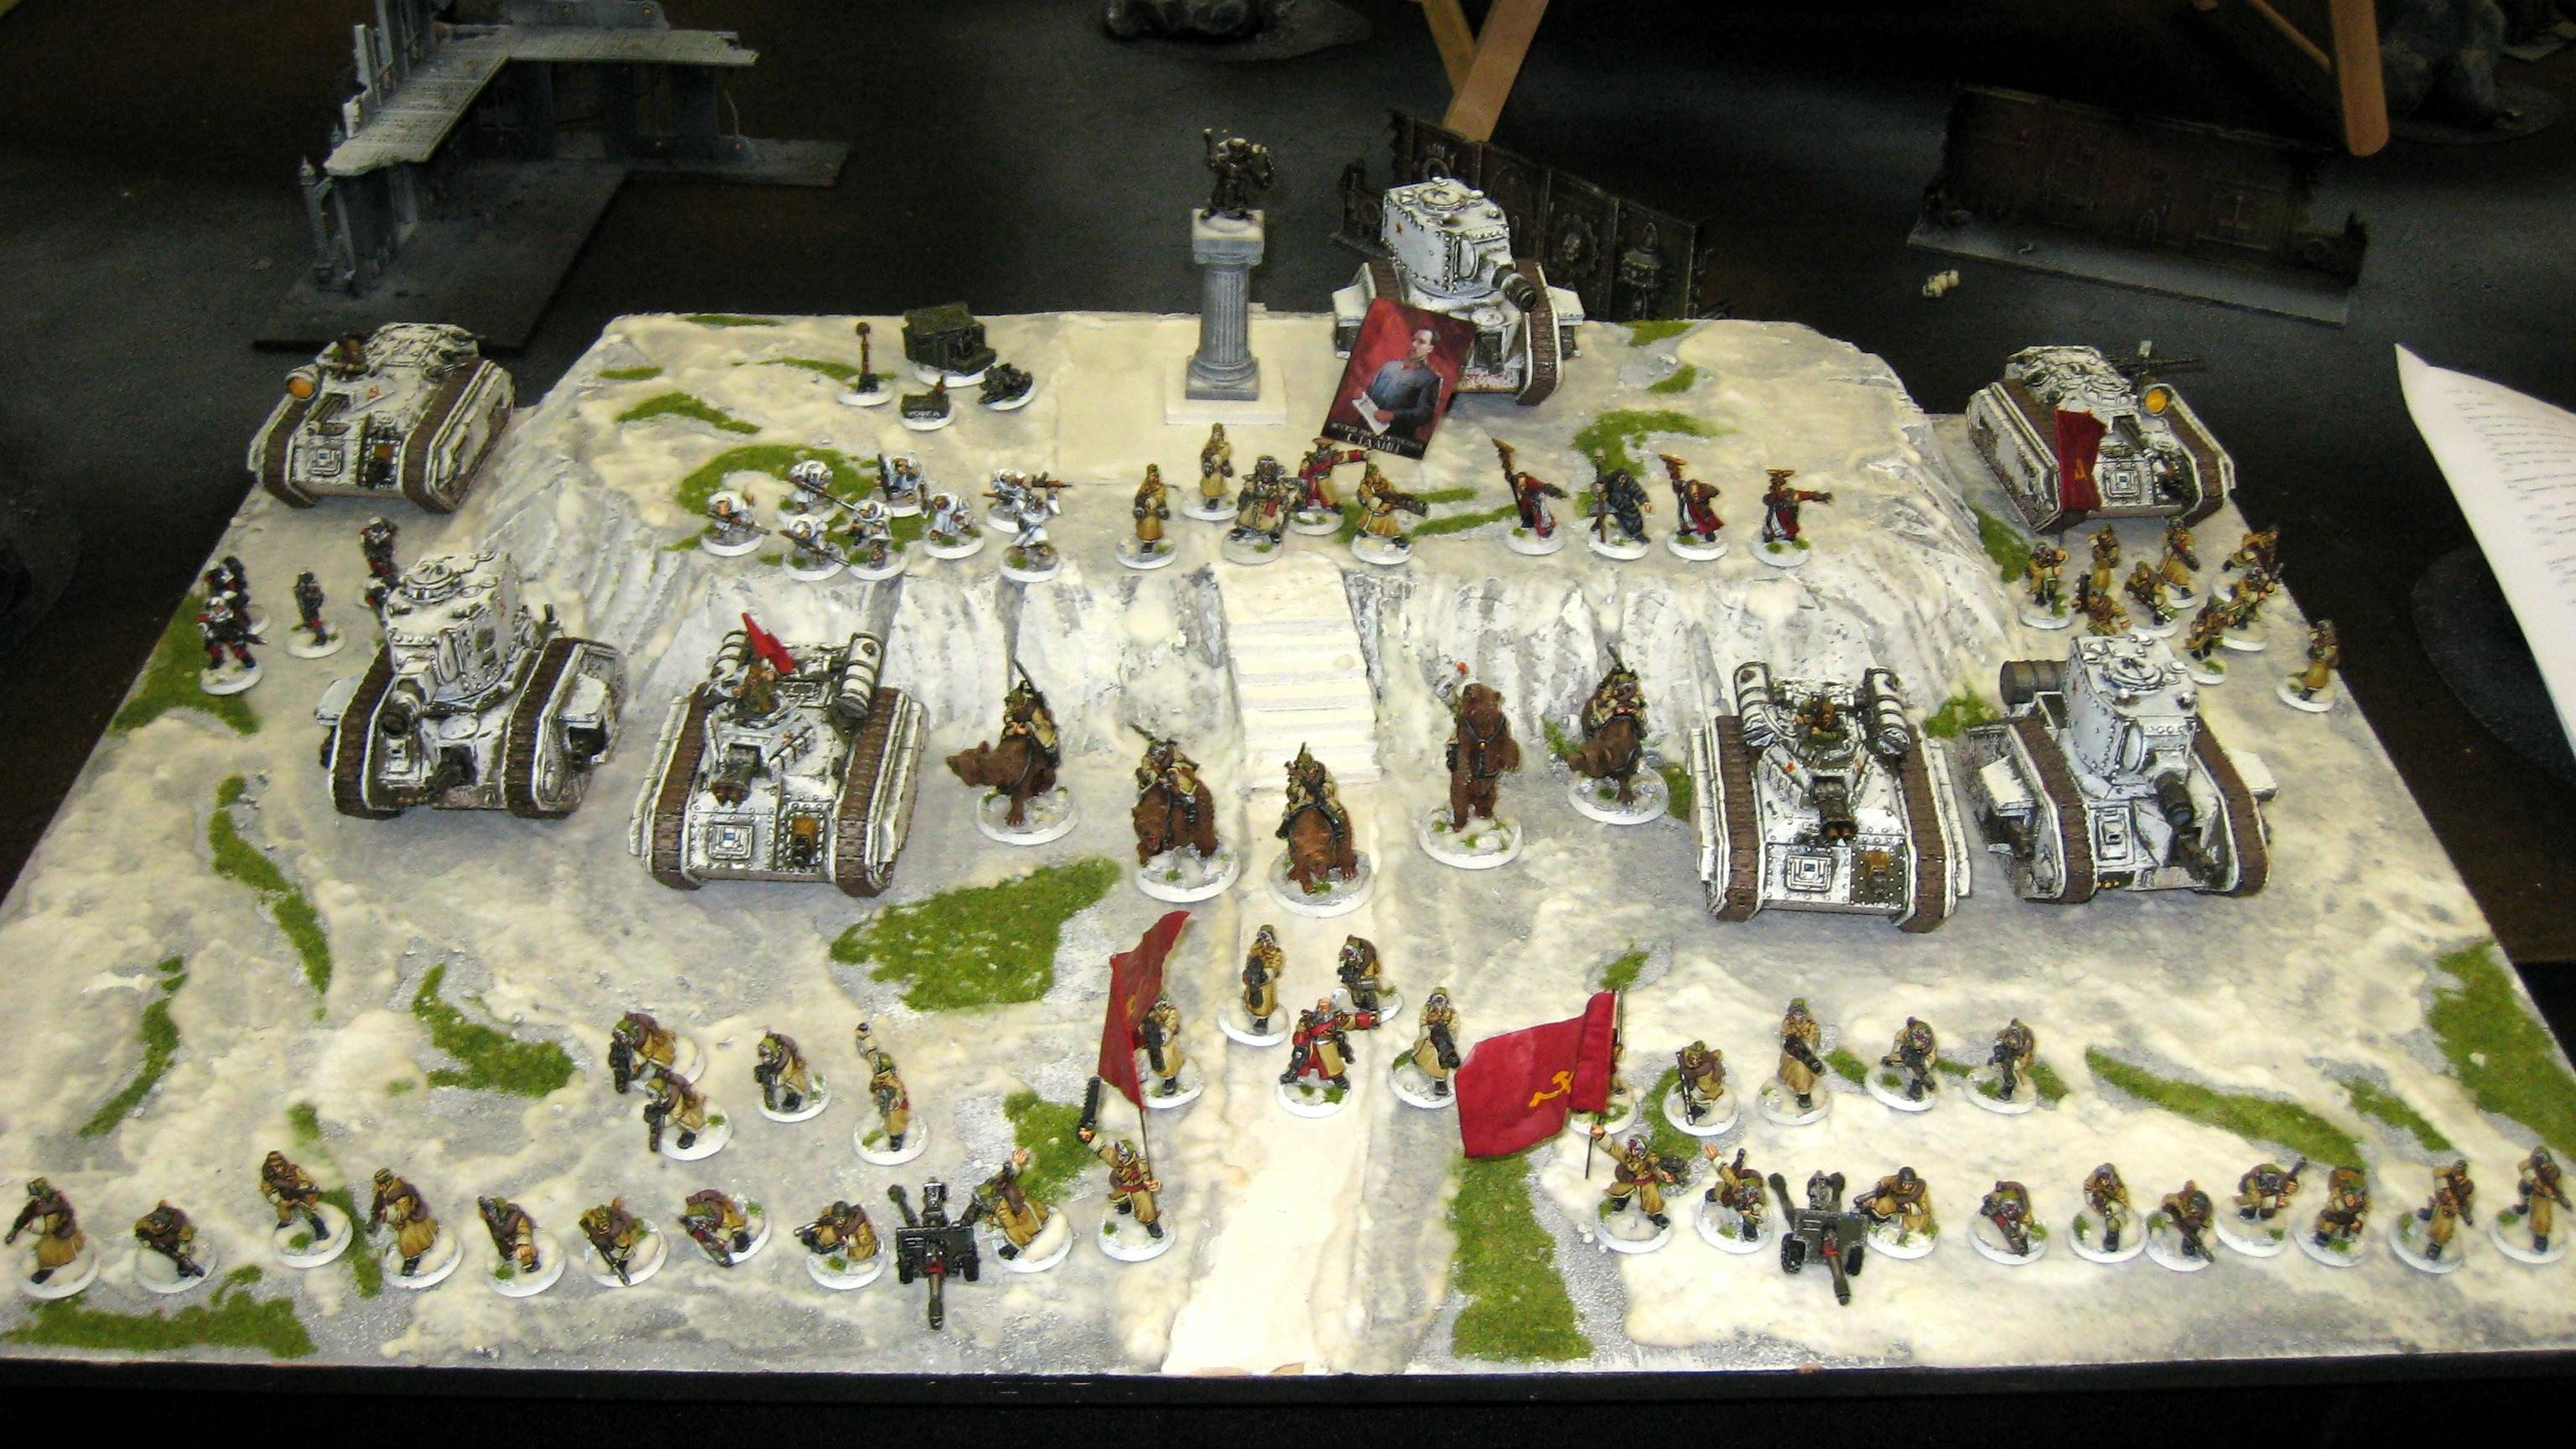 2008, Army, Baltimore, Display, Grand Tournament, Imperial Guard, Valhallans, Warhammer 40,000